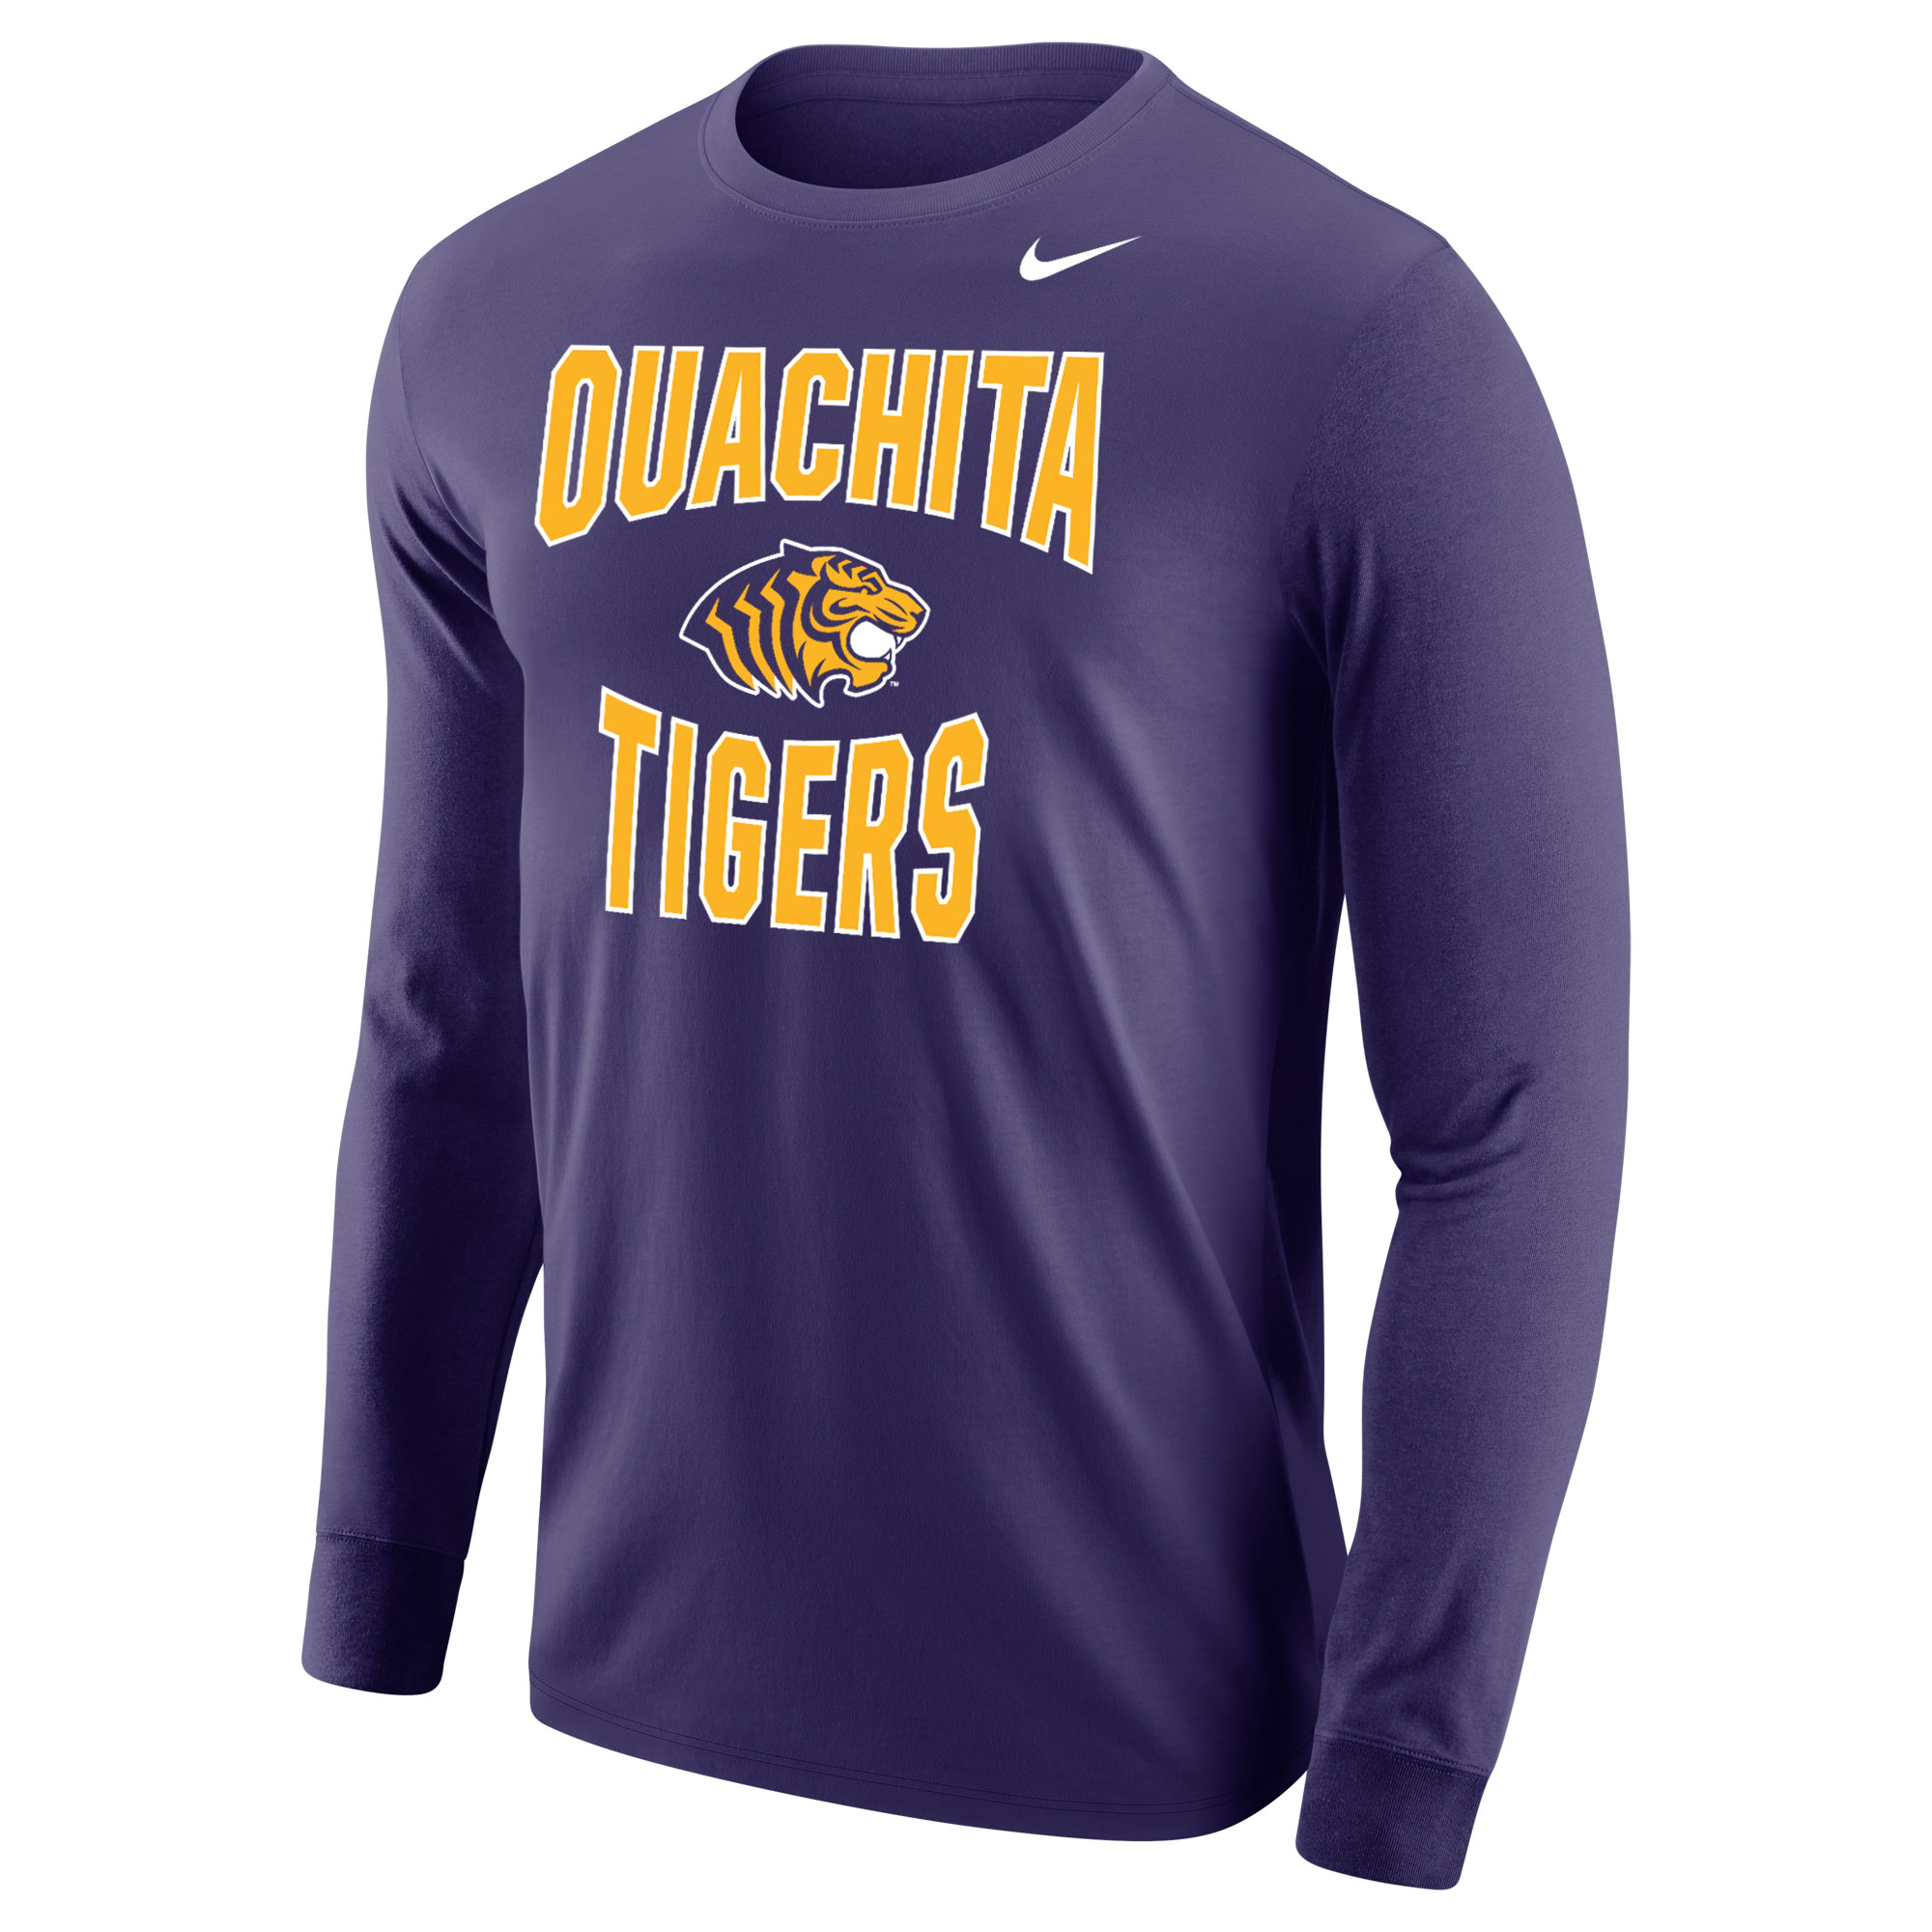 OUACHITA TIGERS NIKE CORE LS TEE